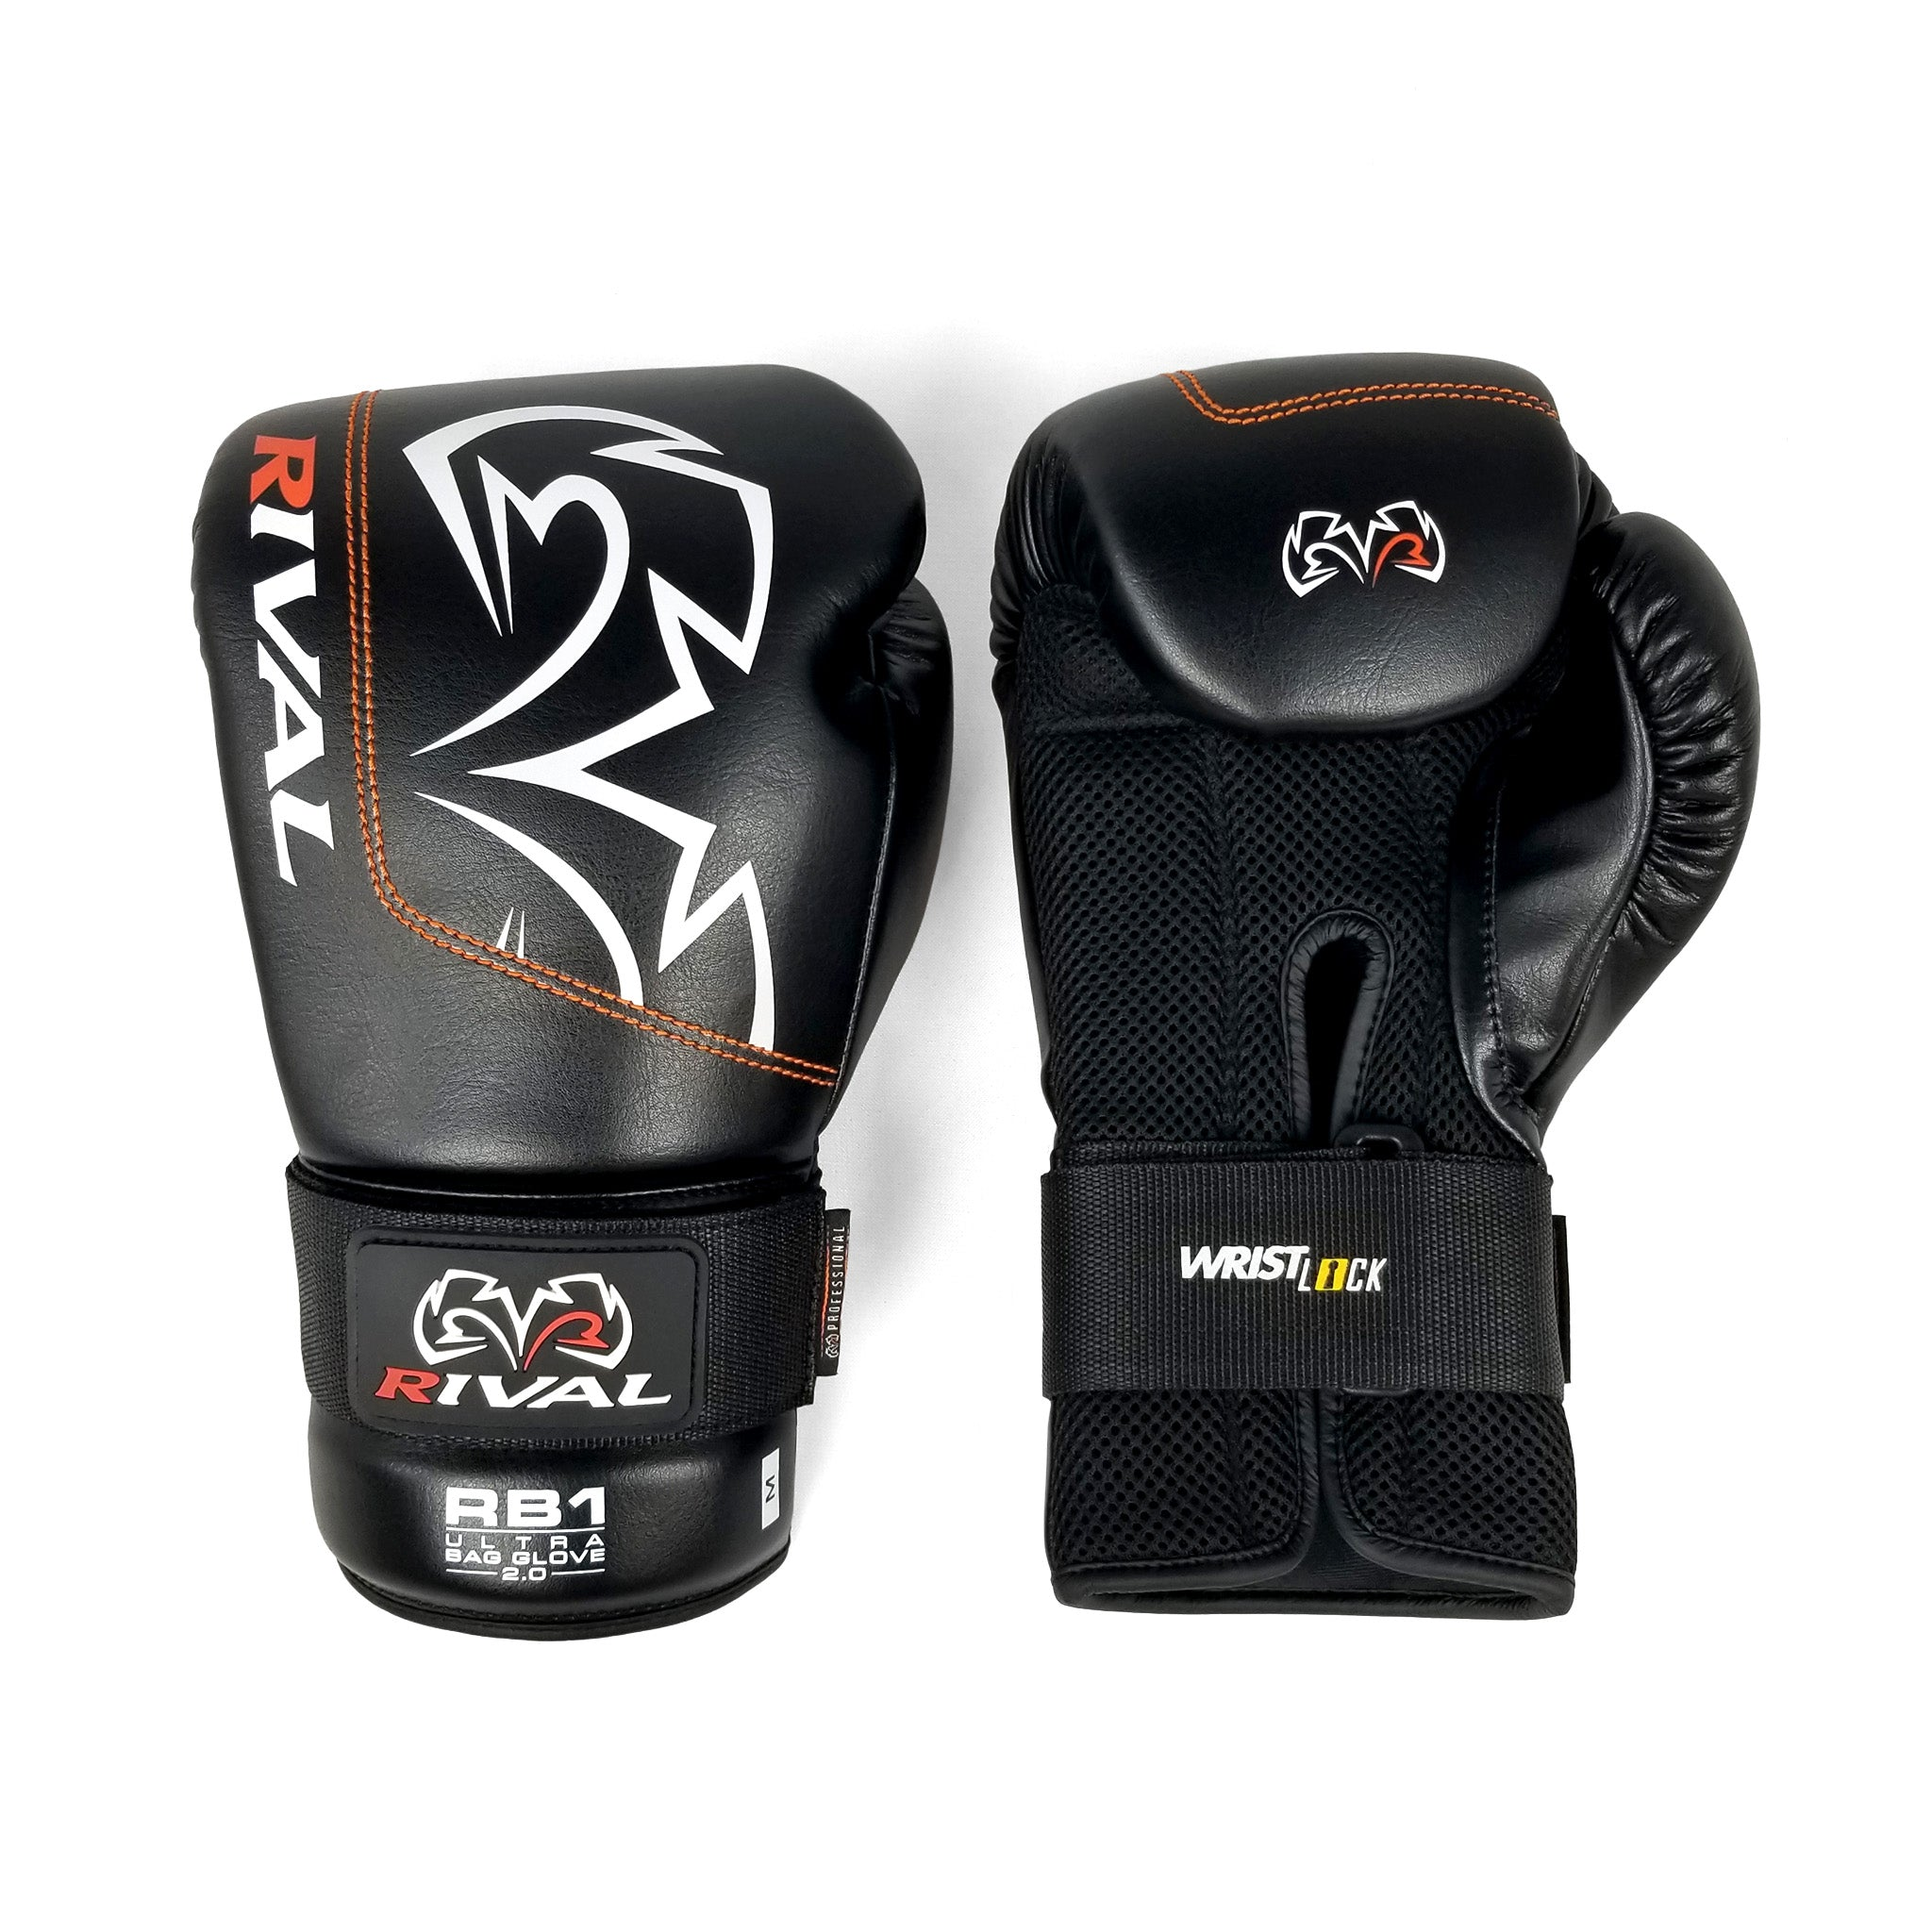 Red Rival Boxing RB1 Hook and Loop Ultra Bag Gloves